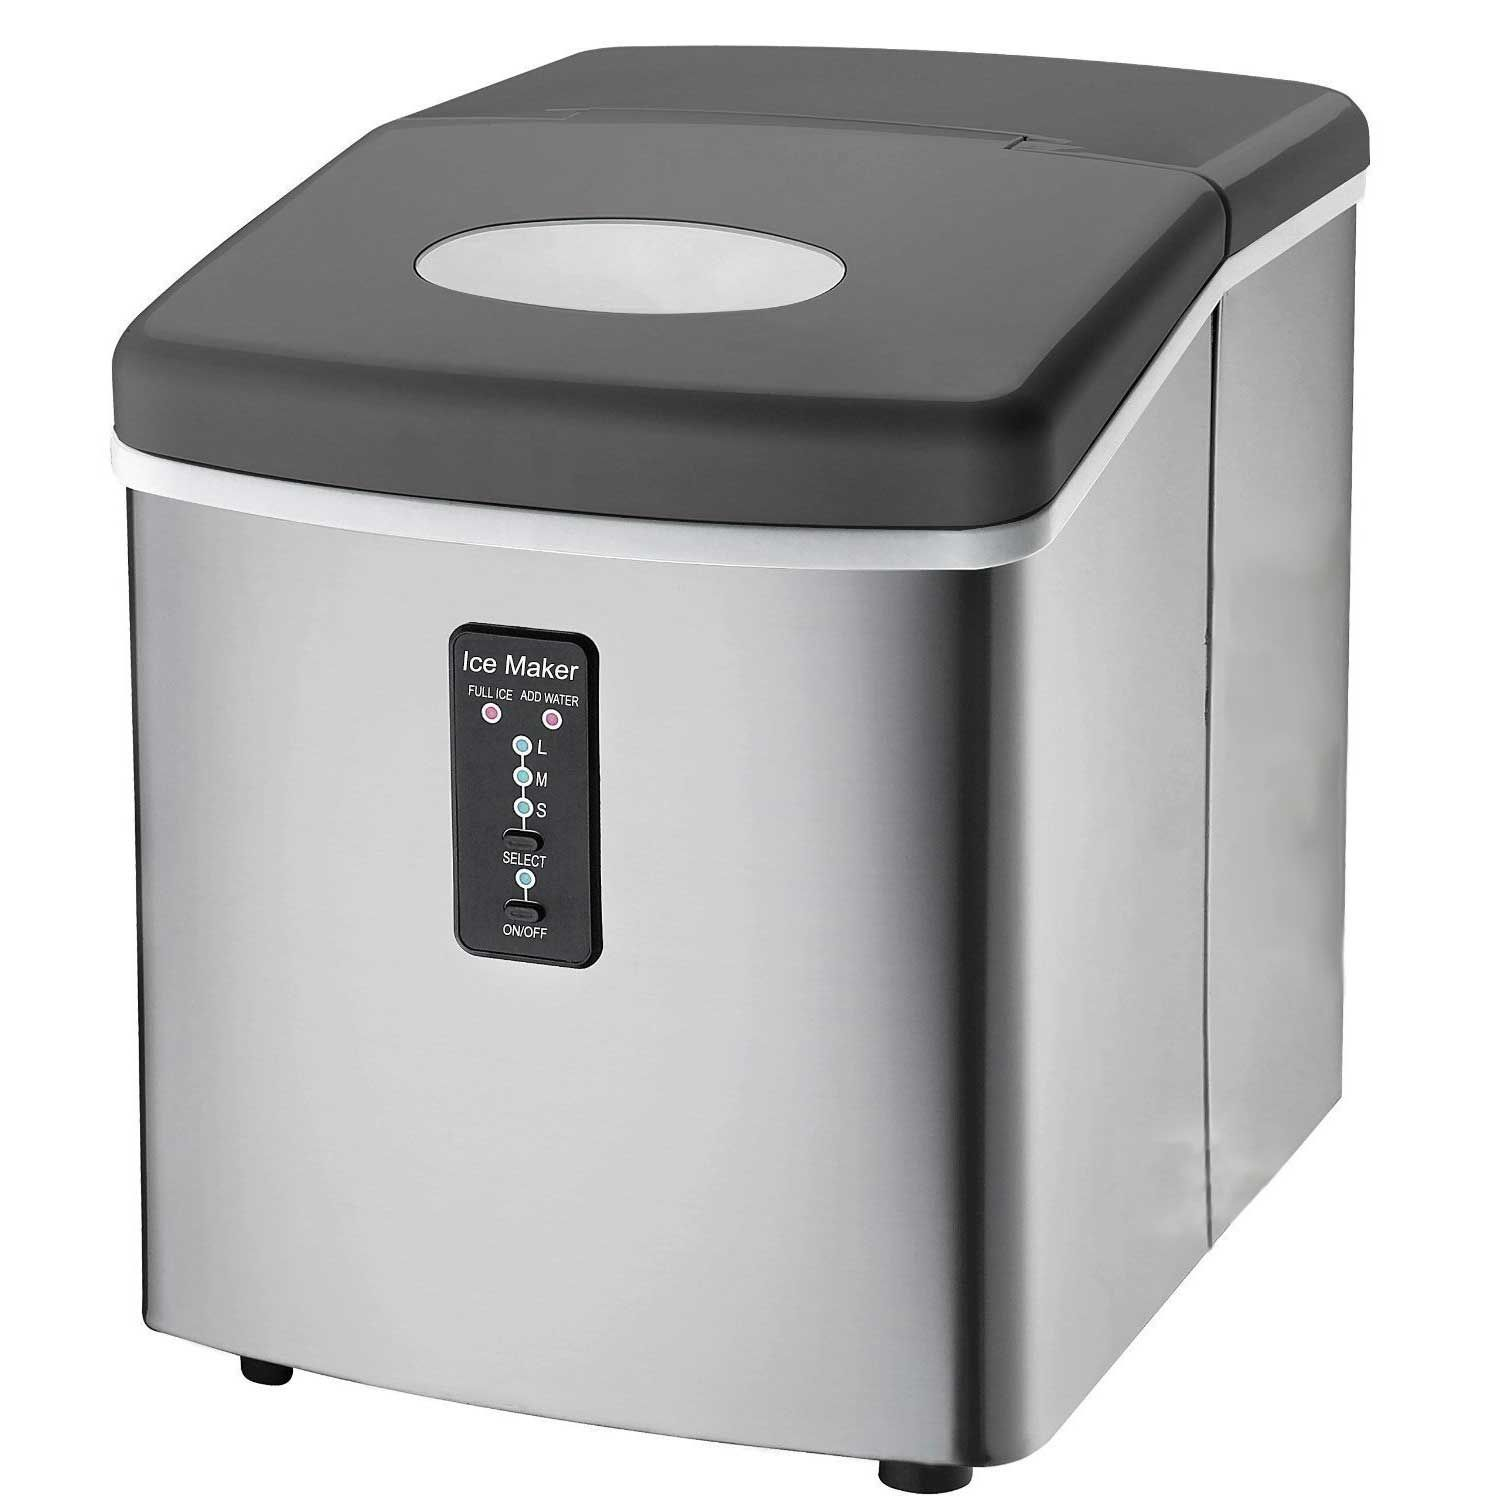 Thinkgizmos Ice Maker Review Nugget Ice Maker Countertops Ice